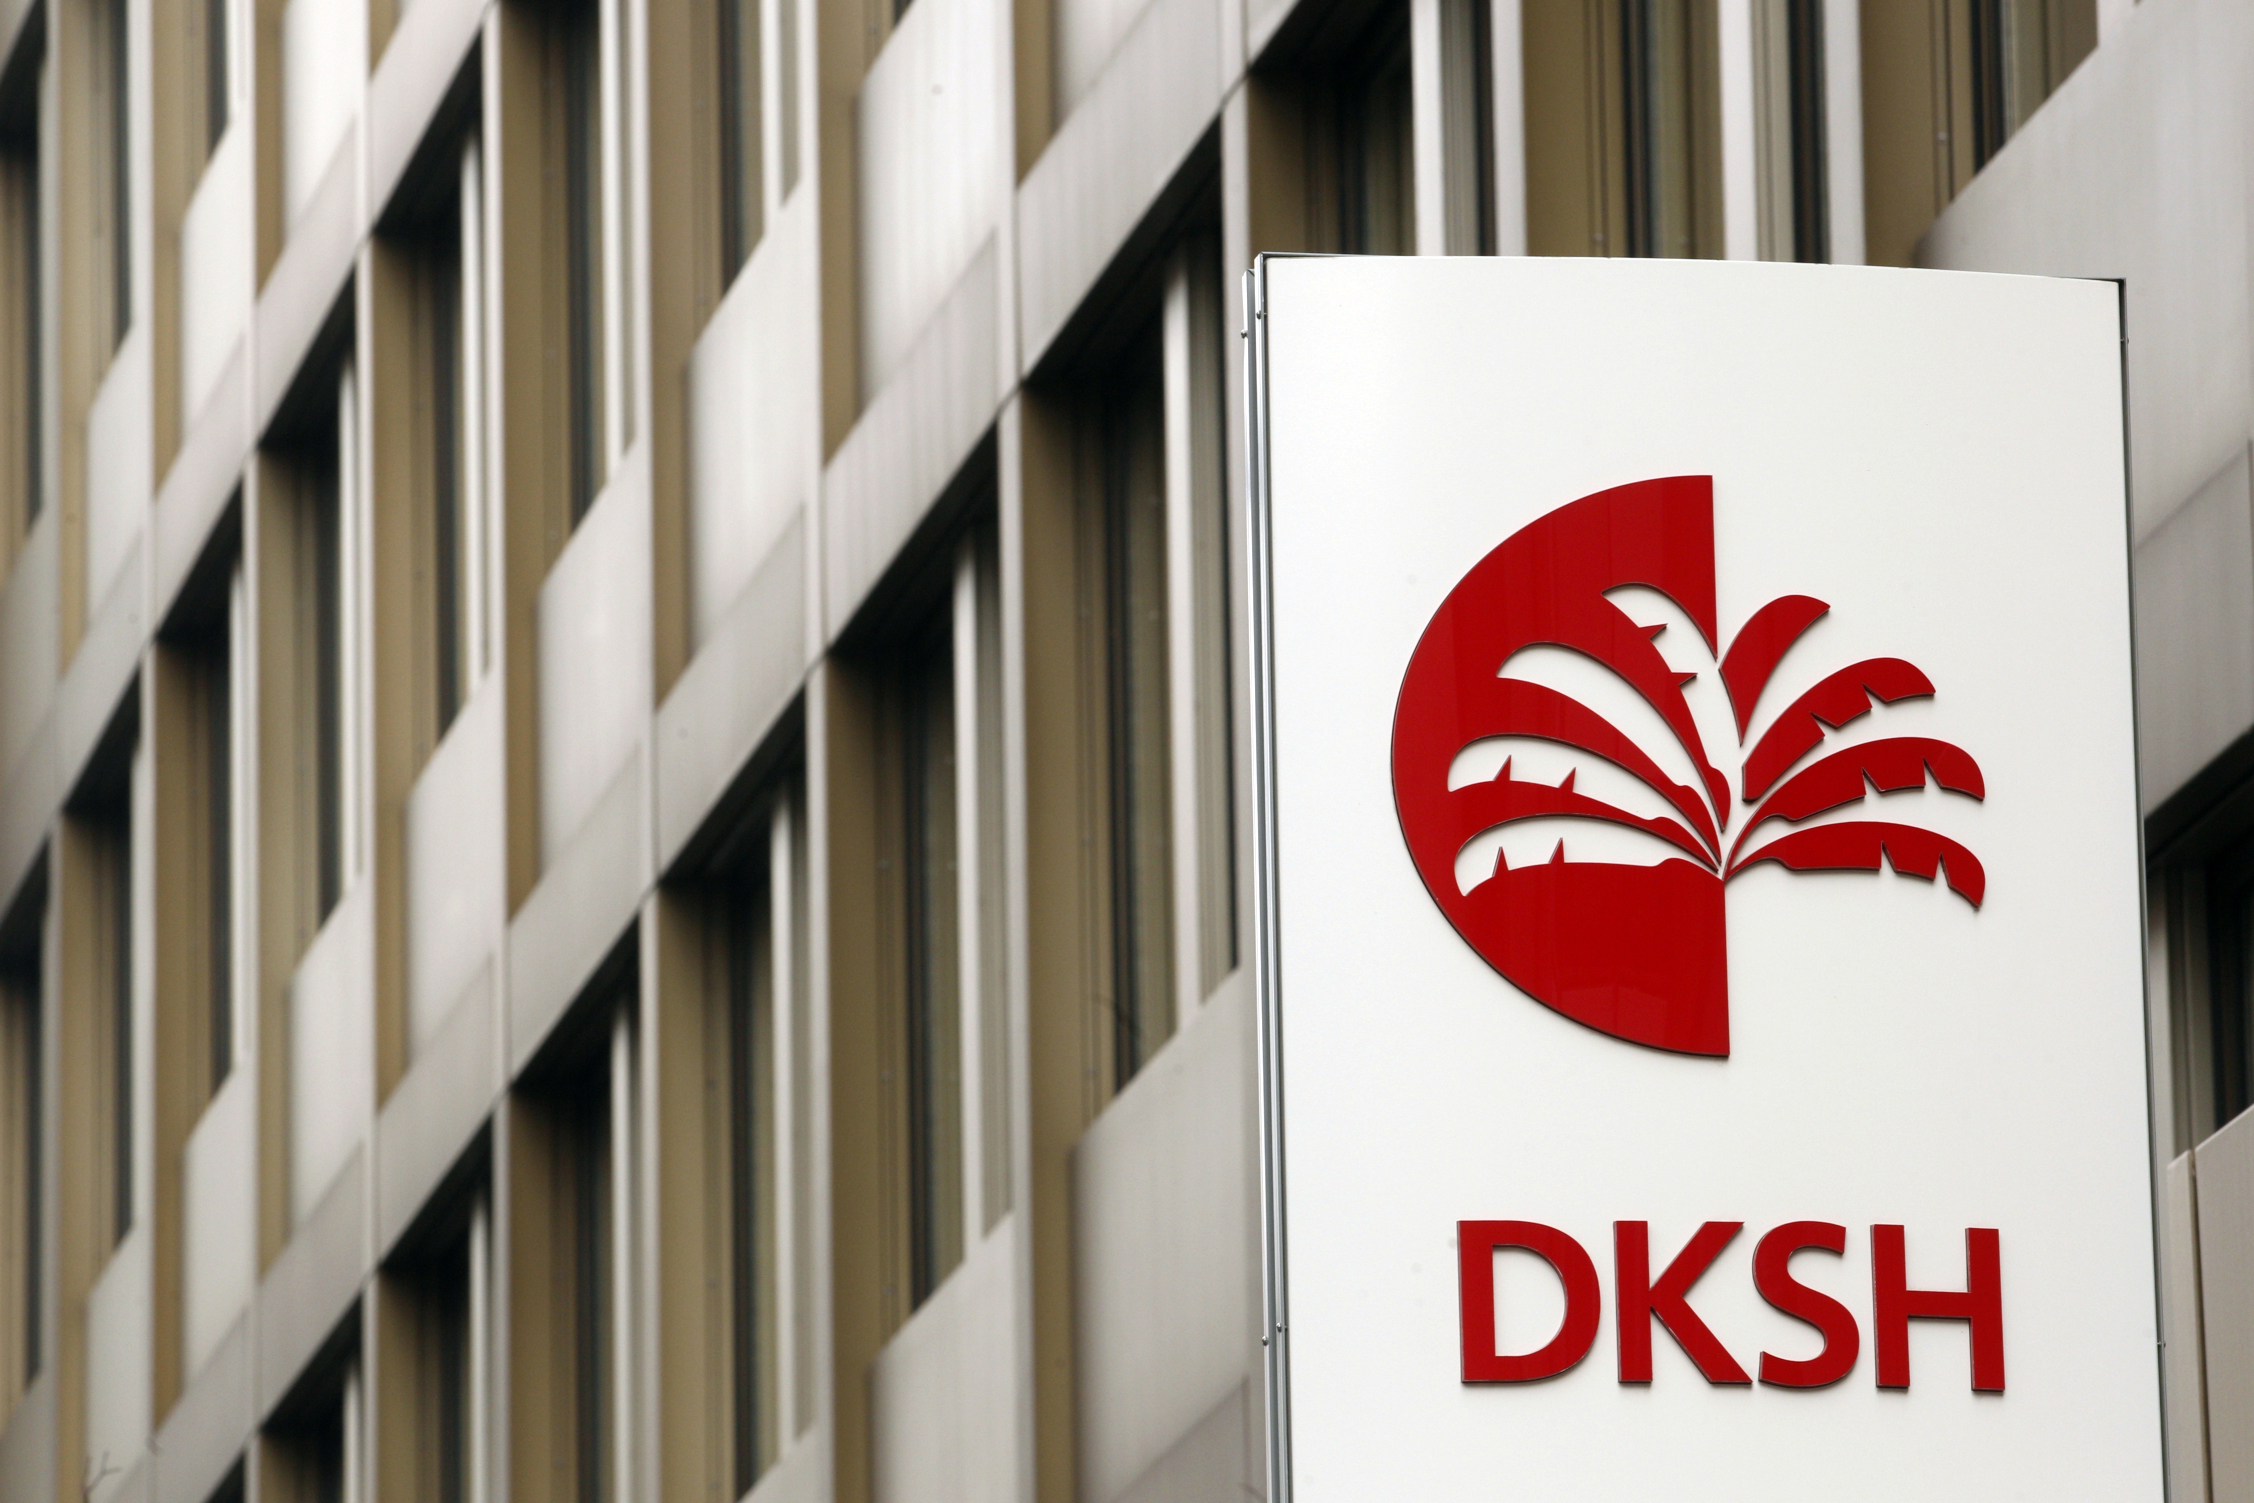 DKSH buys Auric Pacific for RM480 9mil | The Star Online